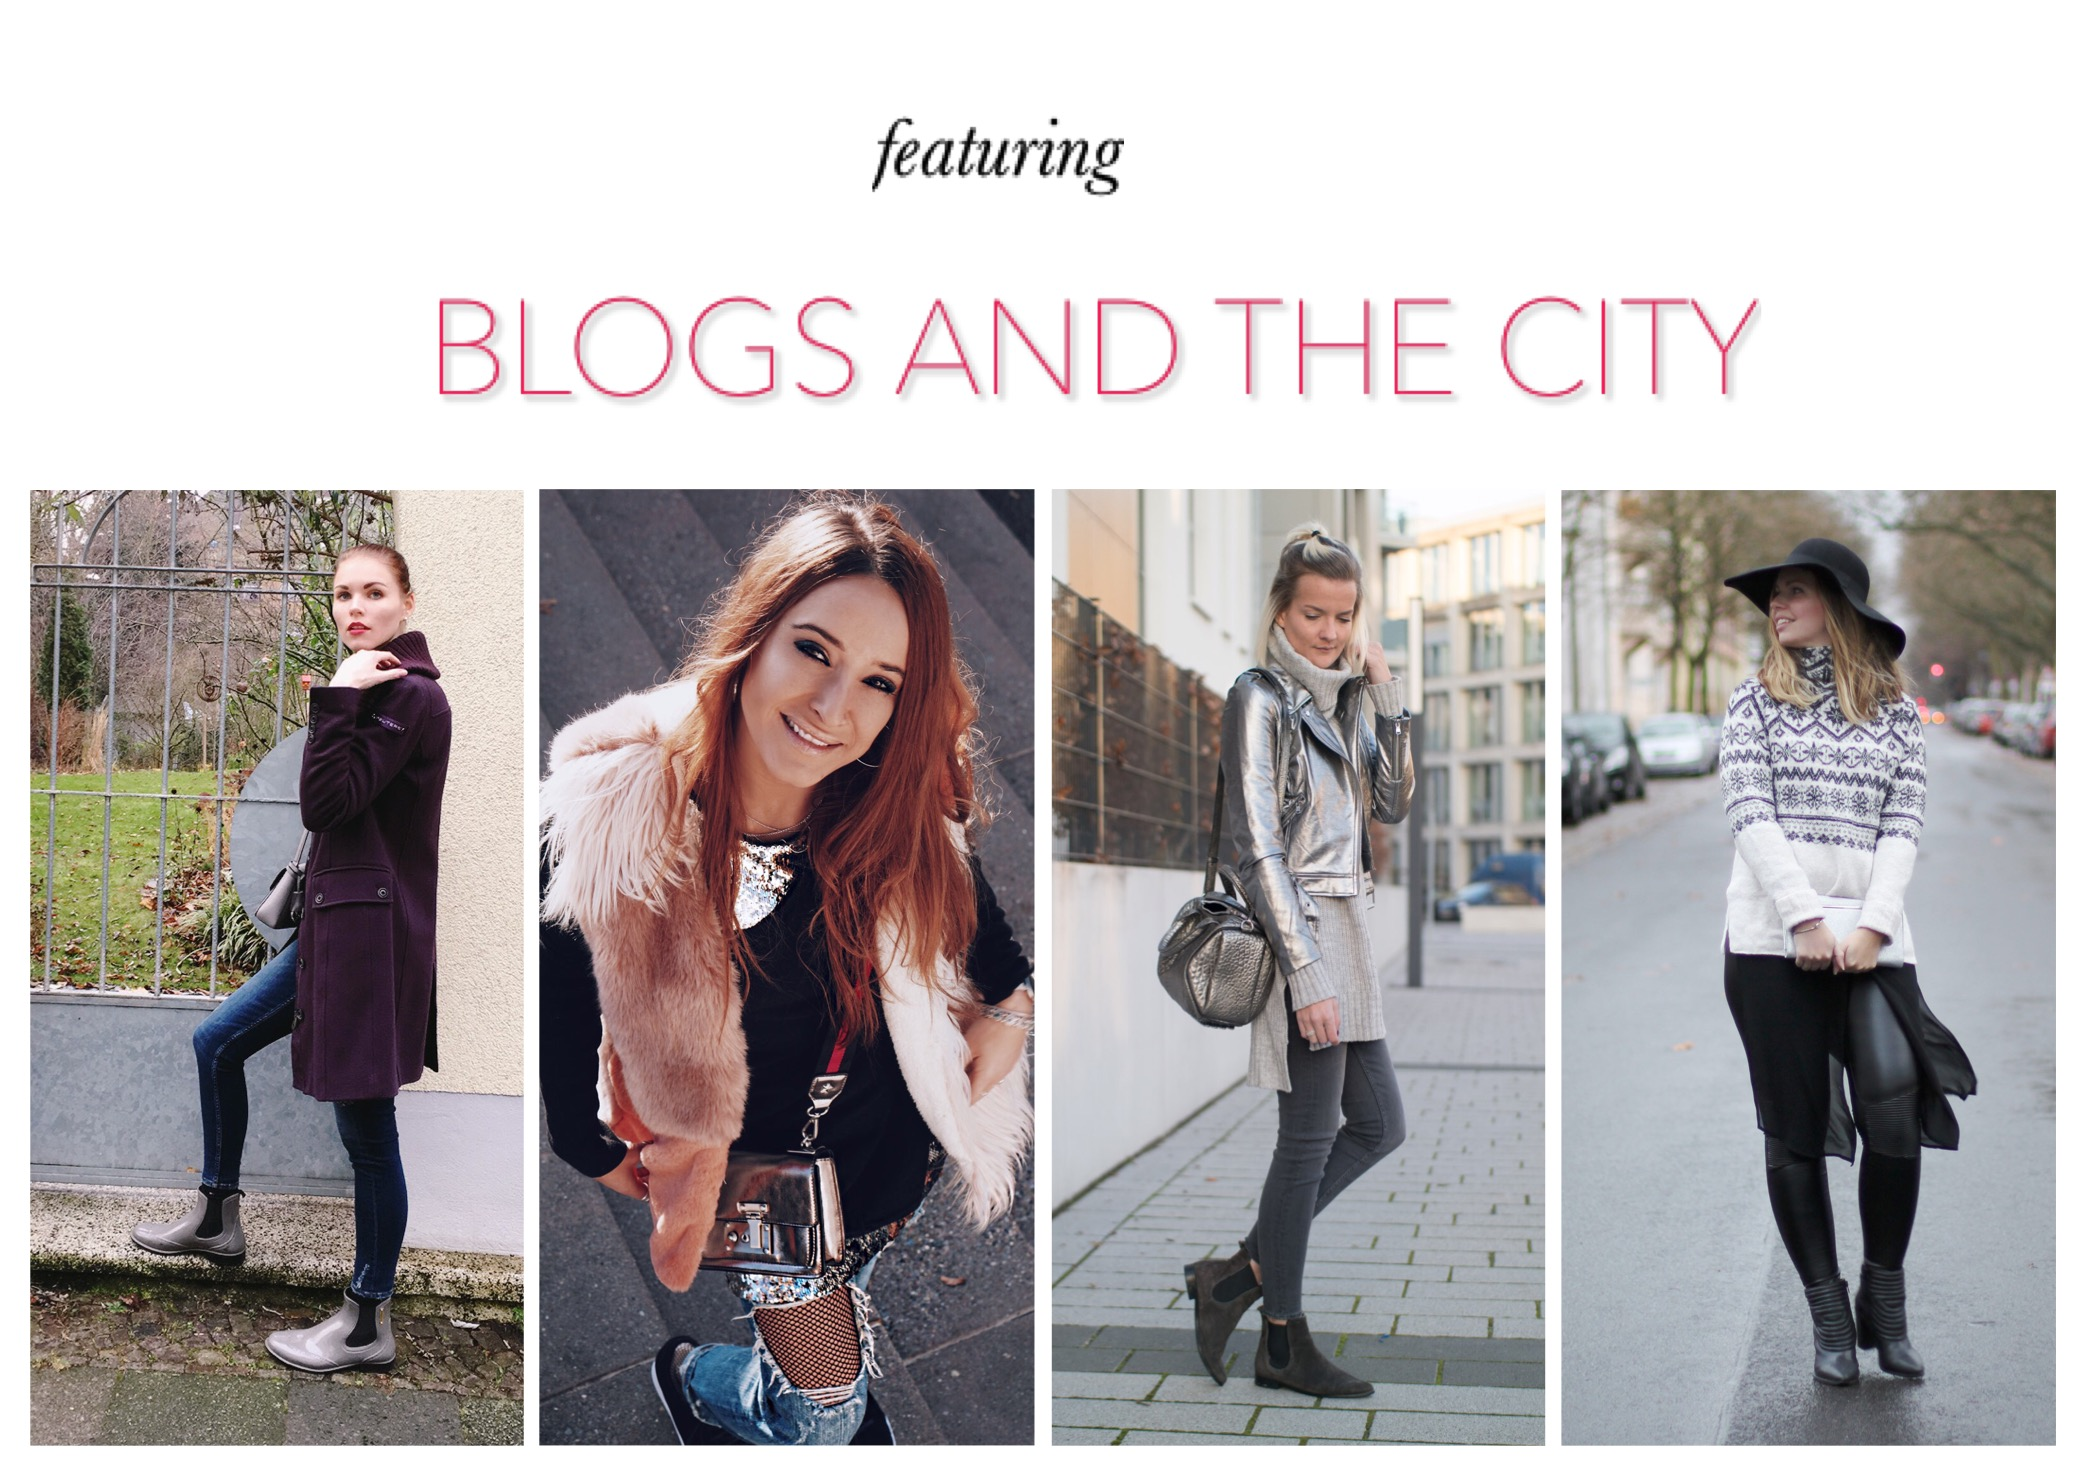 blog-and-the-city_dez